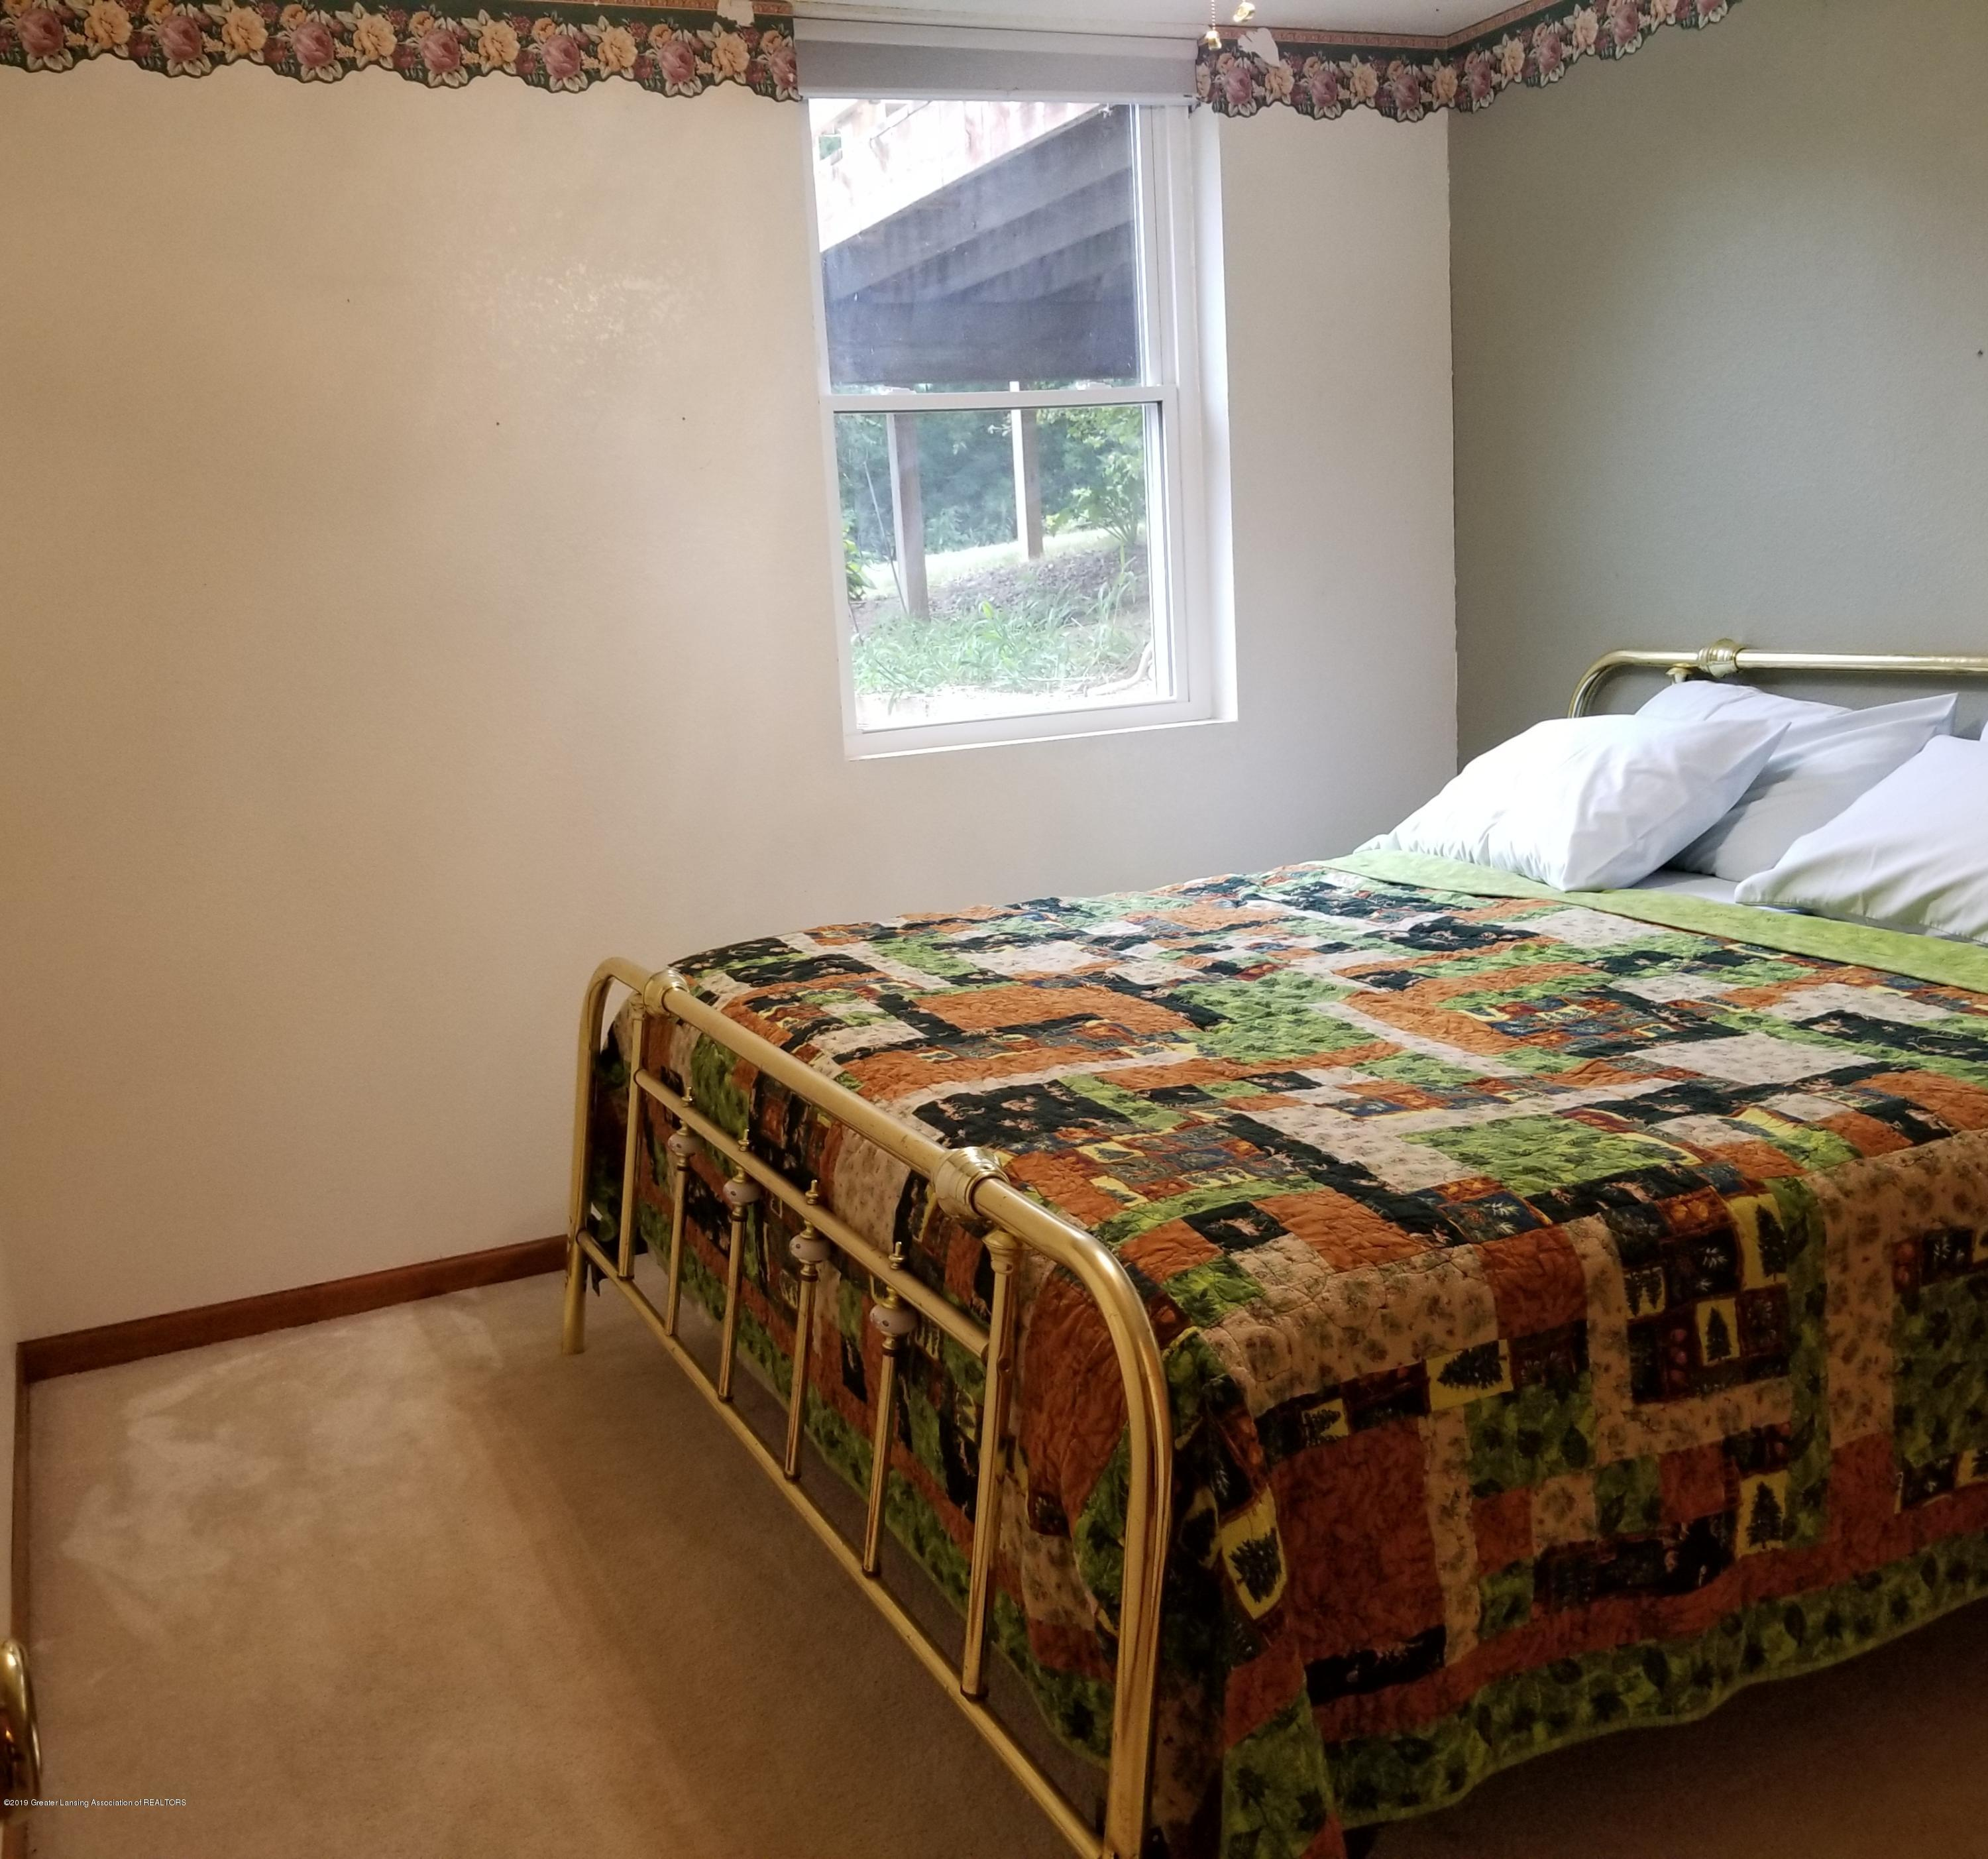 3707 W Grand River Rd - BEDROOM - 11